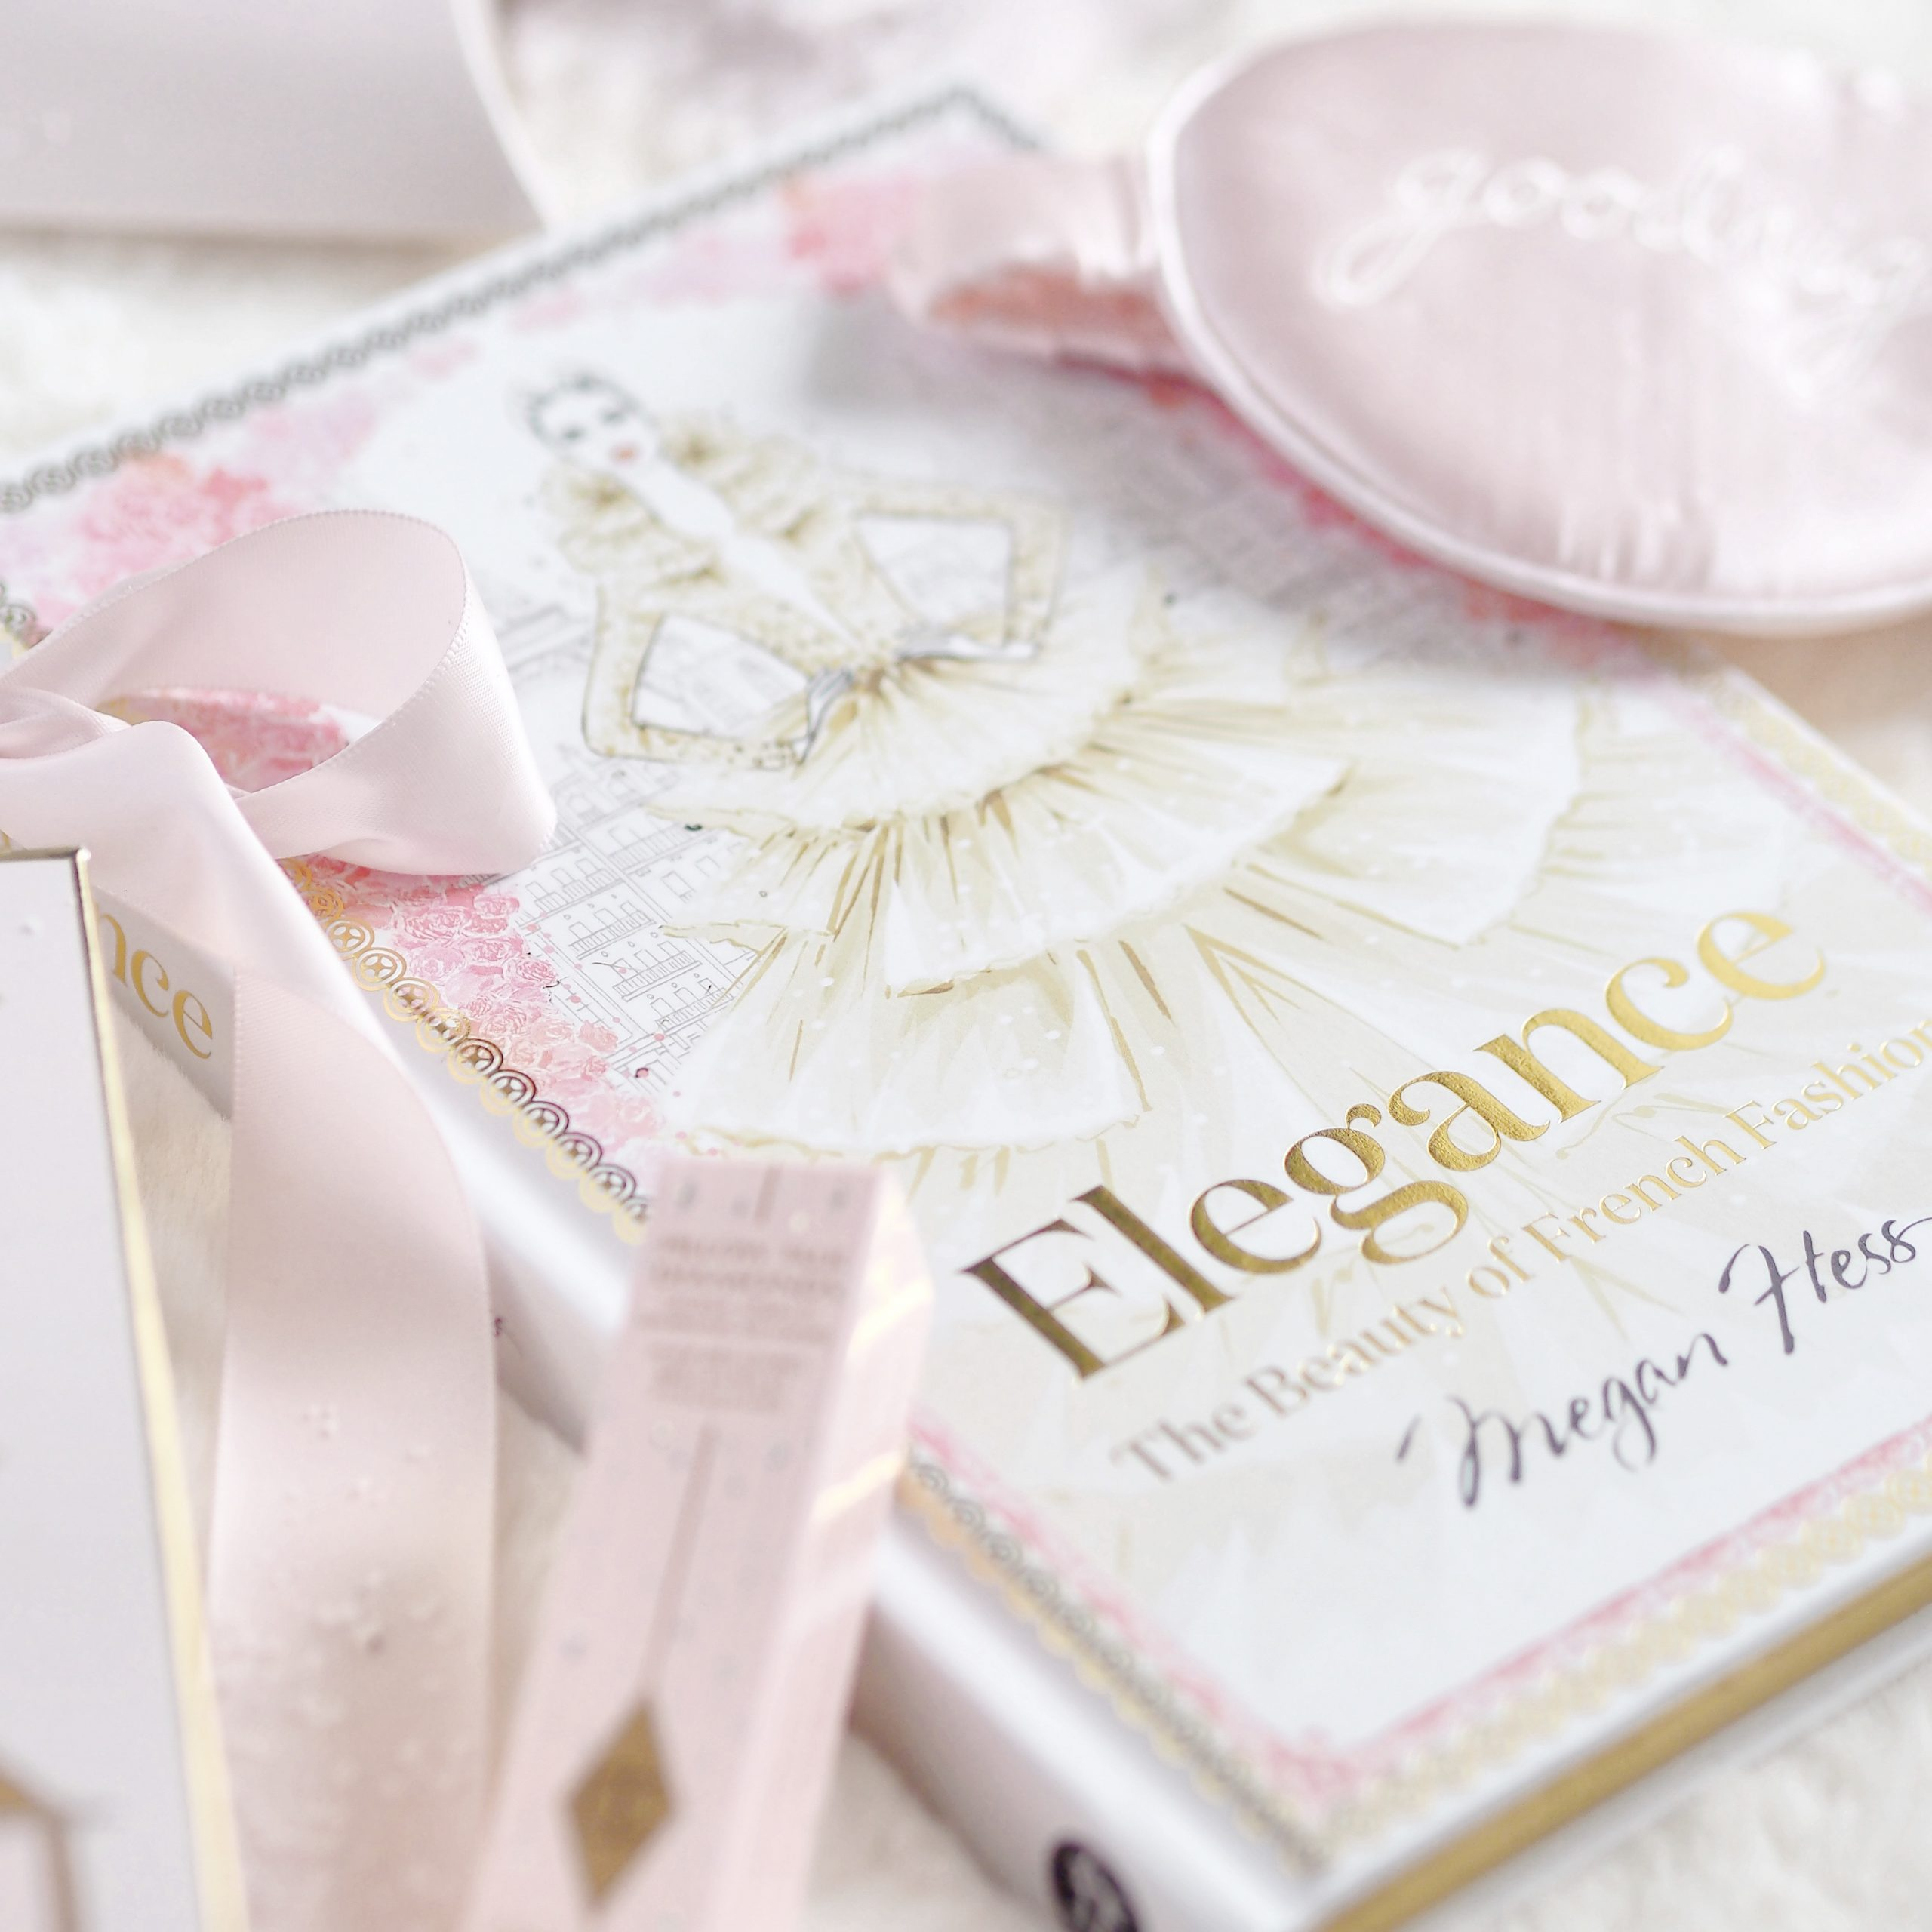 Megan Hess Elegance Book | Perfectly Pretty Christmas Gift Ideas